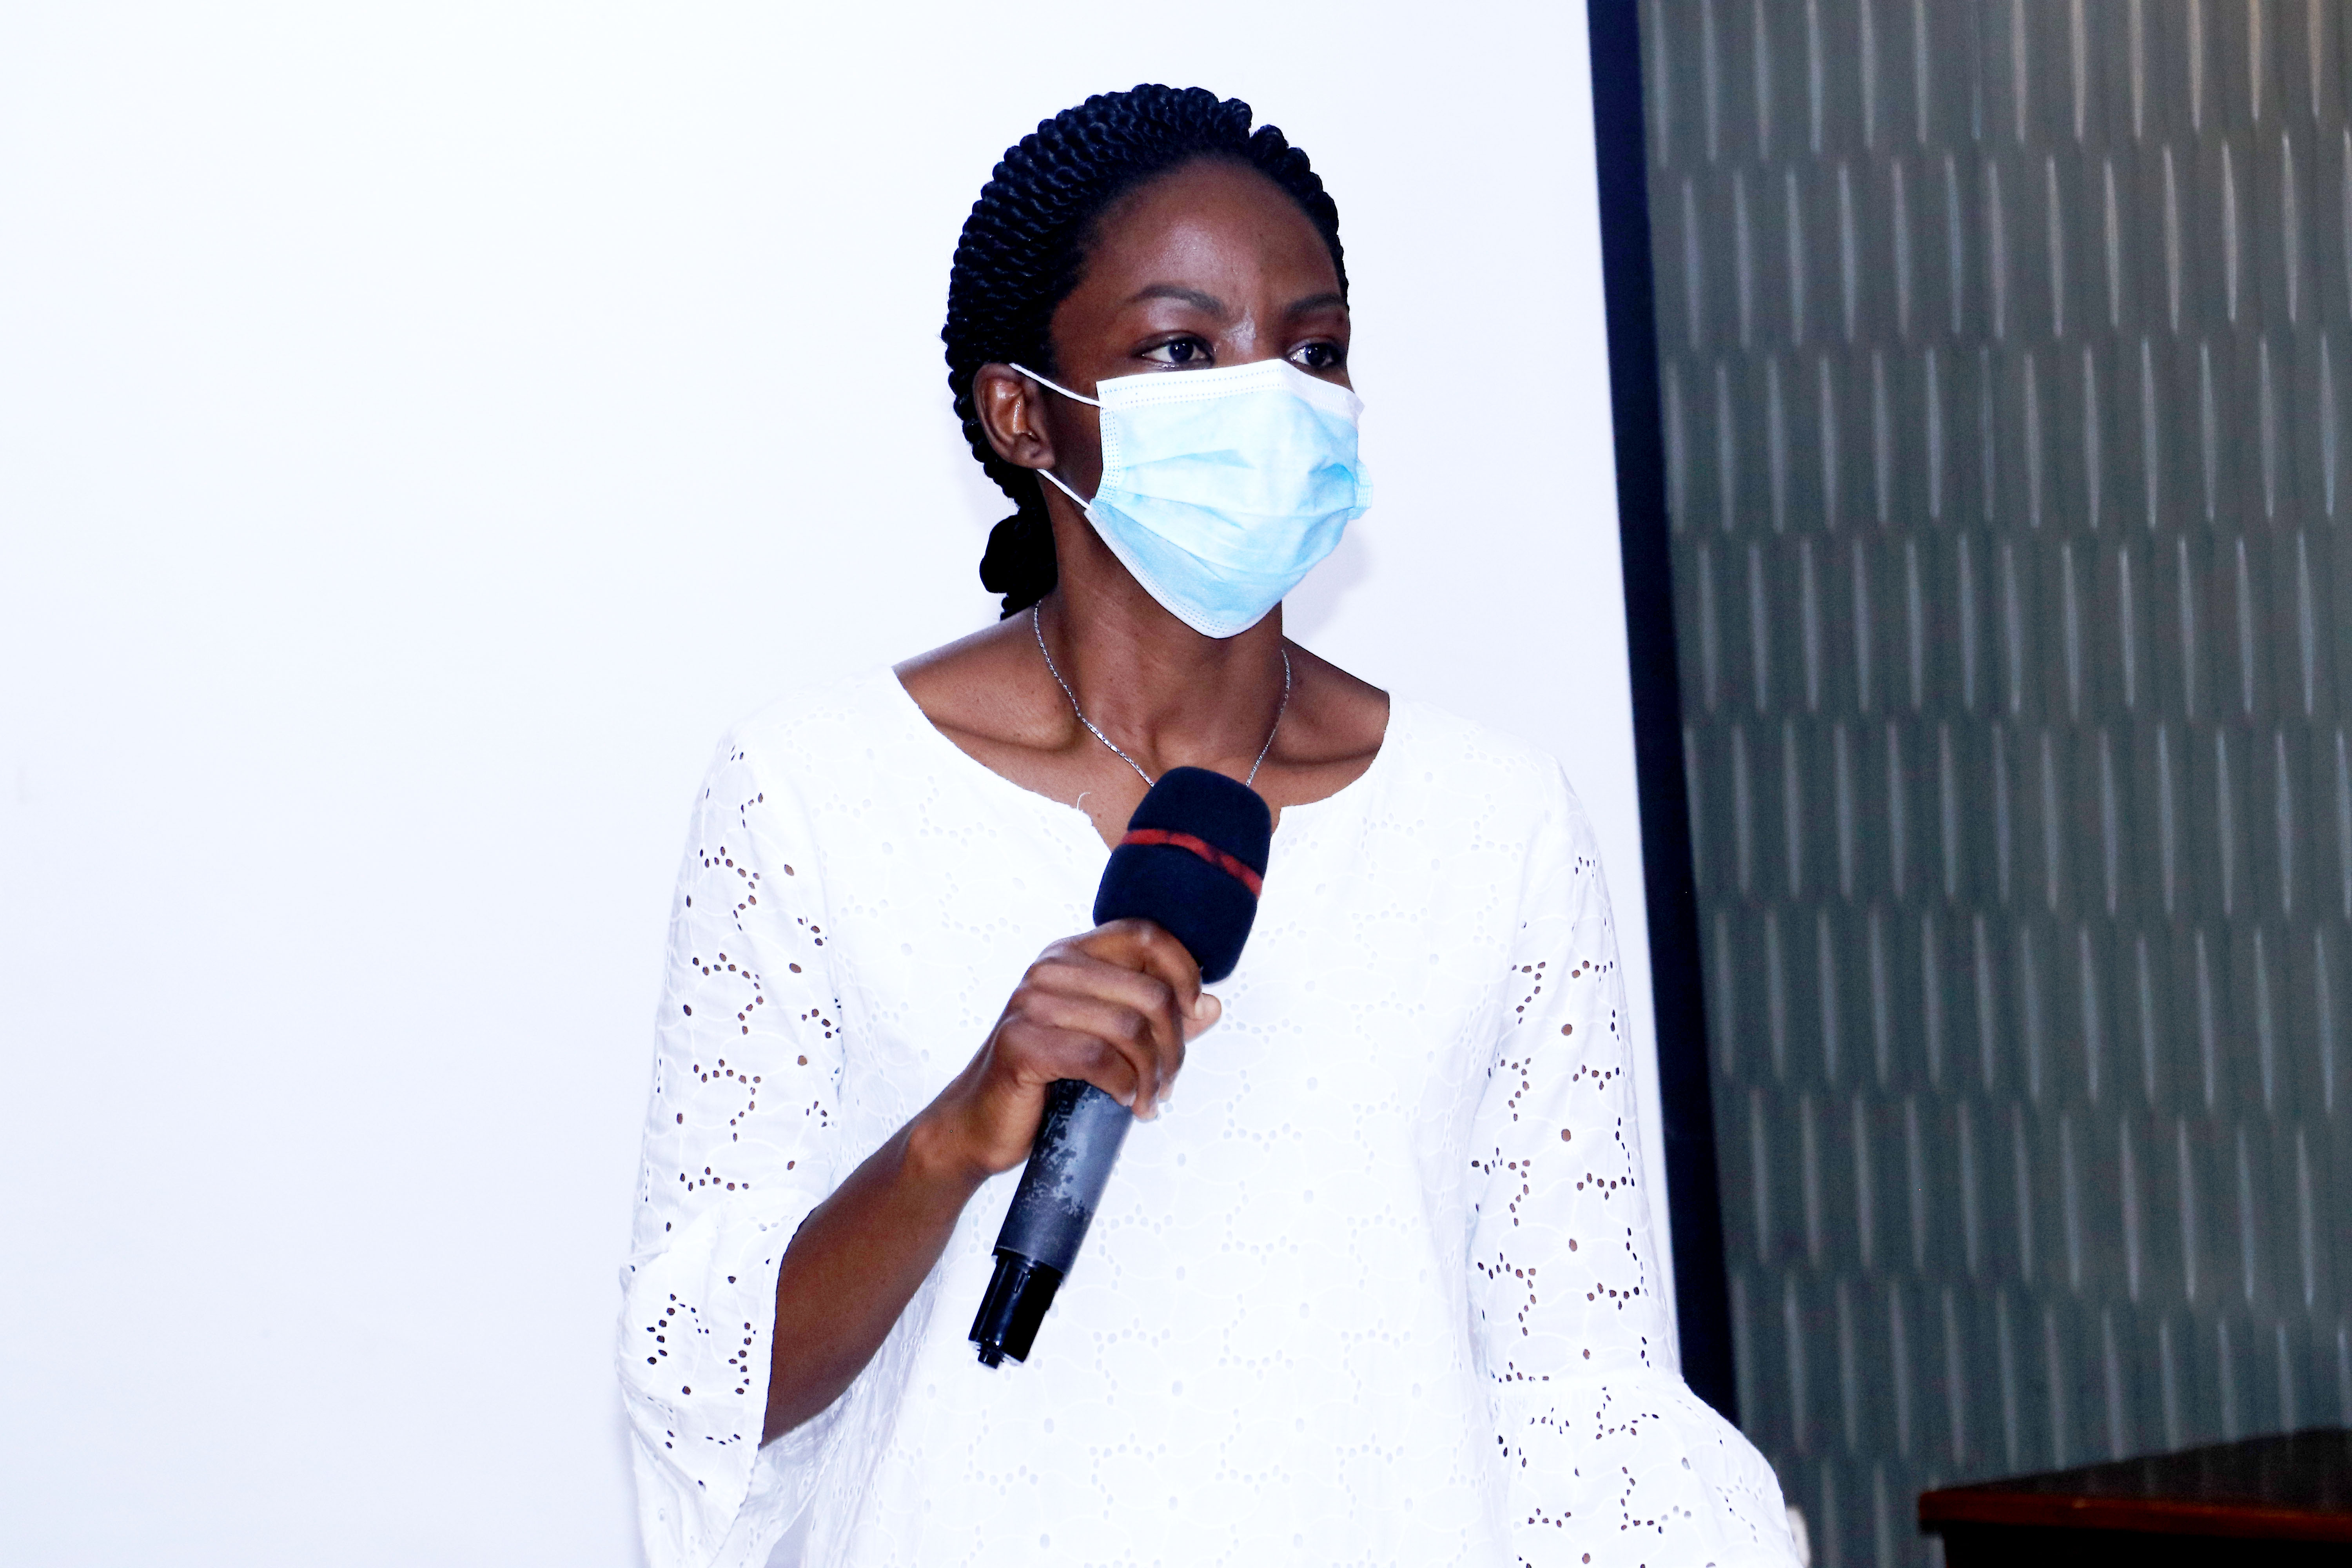 Dr. Esther Buregyeya, an Associate Professor and Head of the Department of Disease Control and Environmental Health at Makerere University School of Public Health